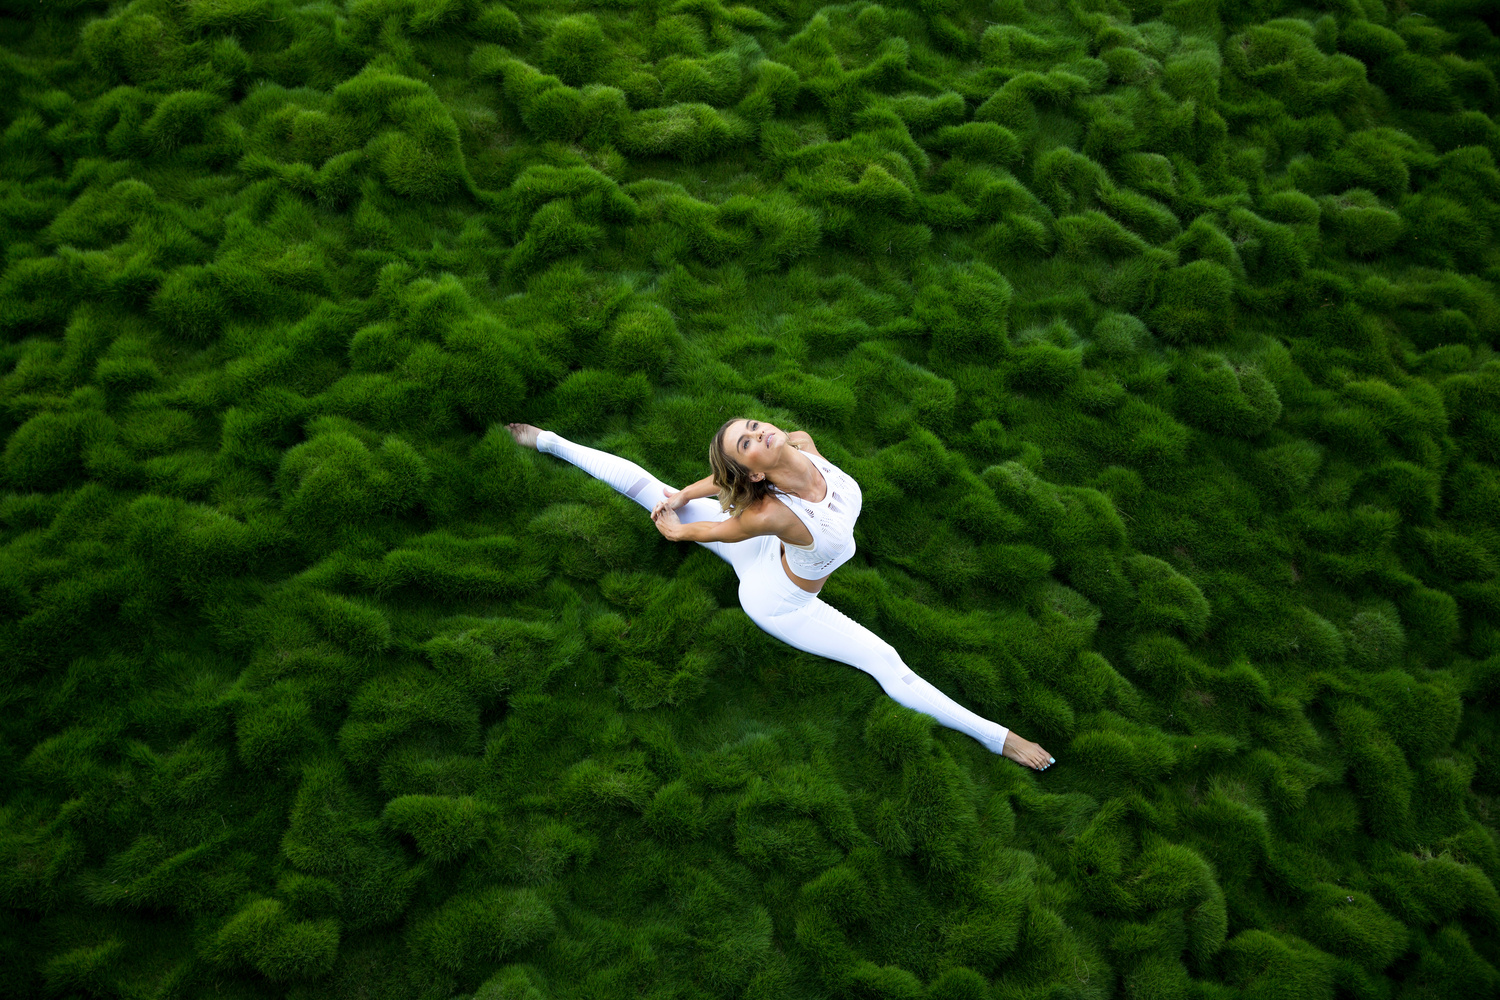 Broccoli Yoga by Andrea Domjan